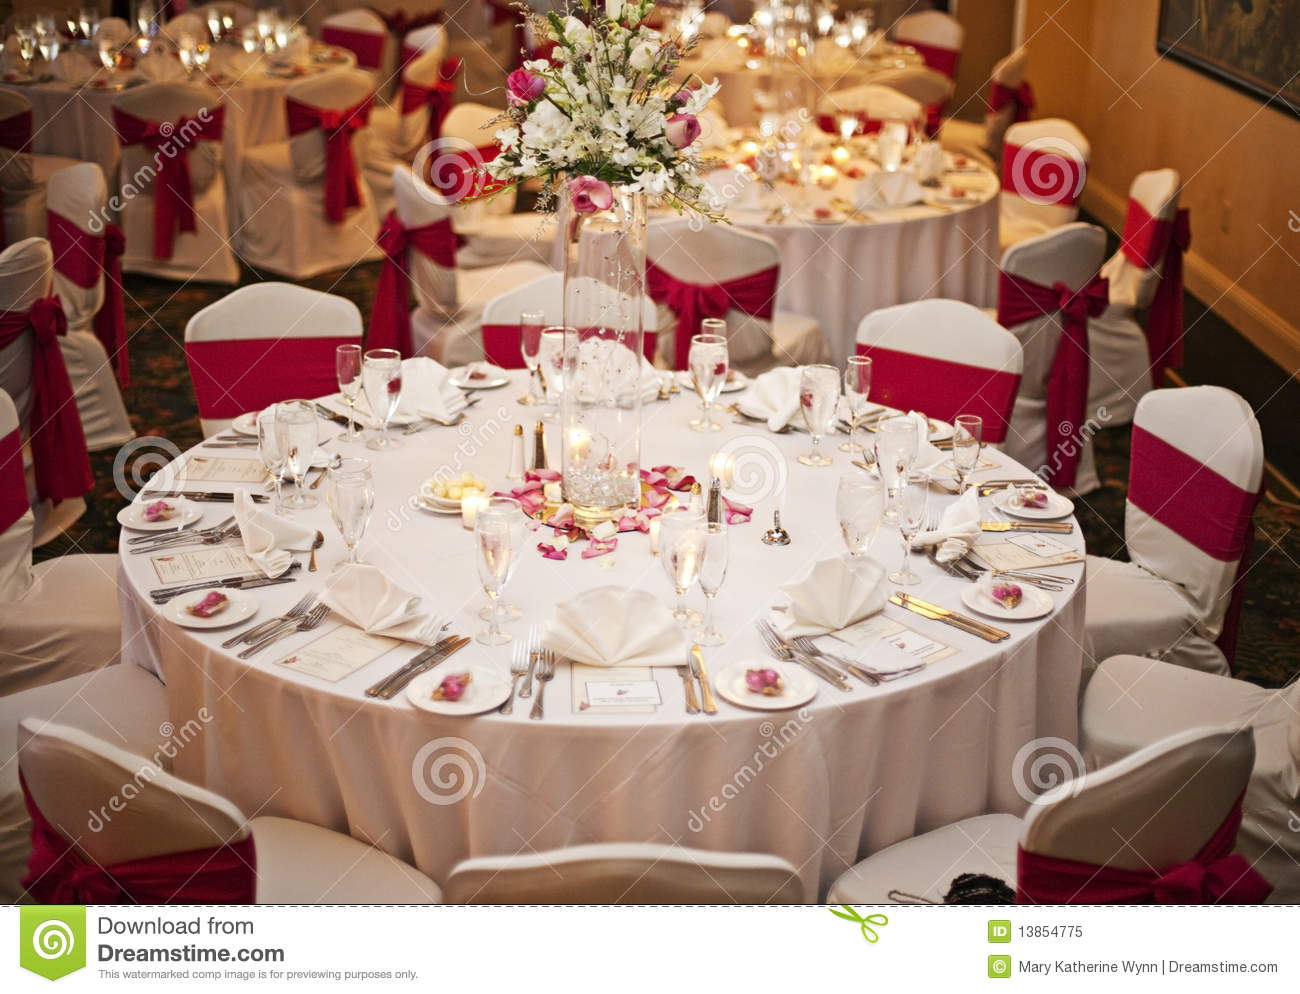 Wedding Receptions Tables.Wedding Reception Tables Stock Image Image Of Arrangements 13854775